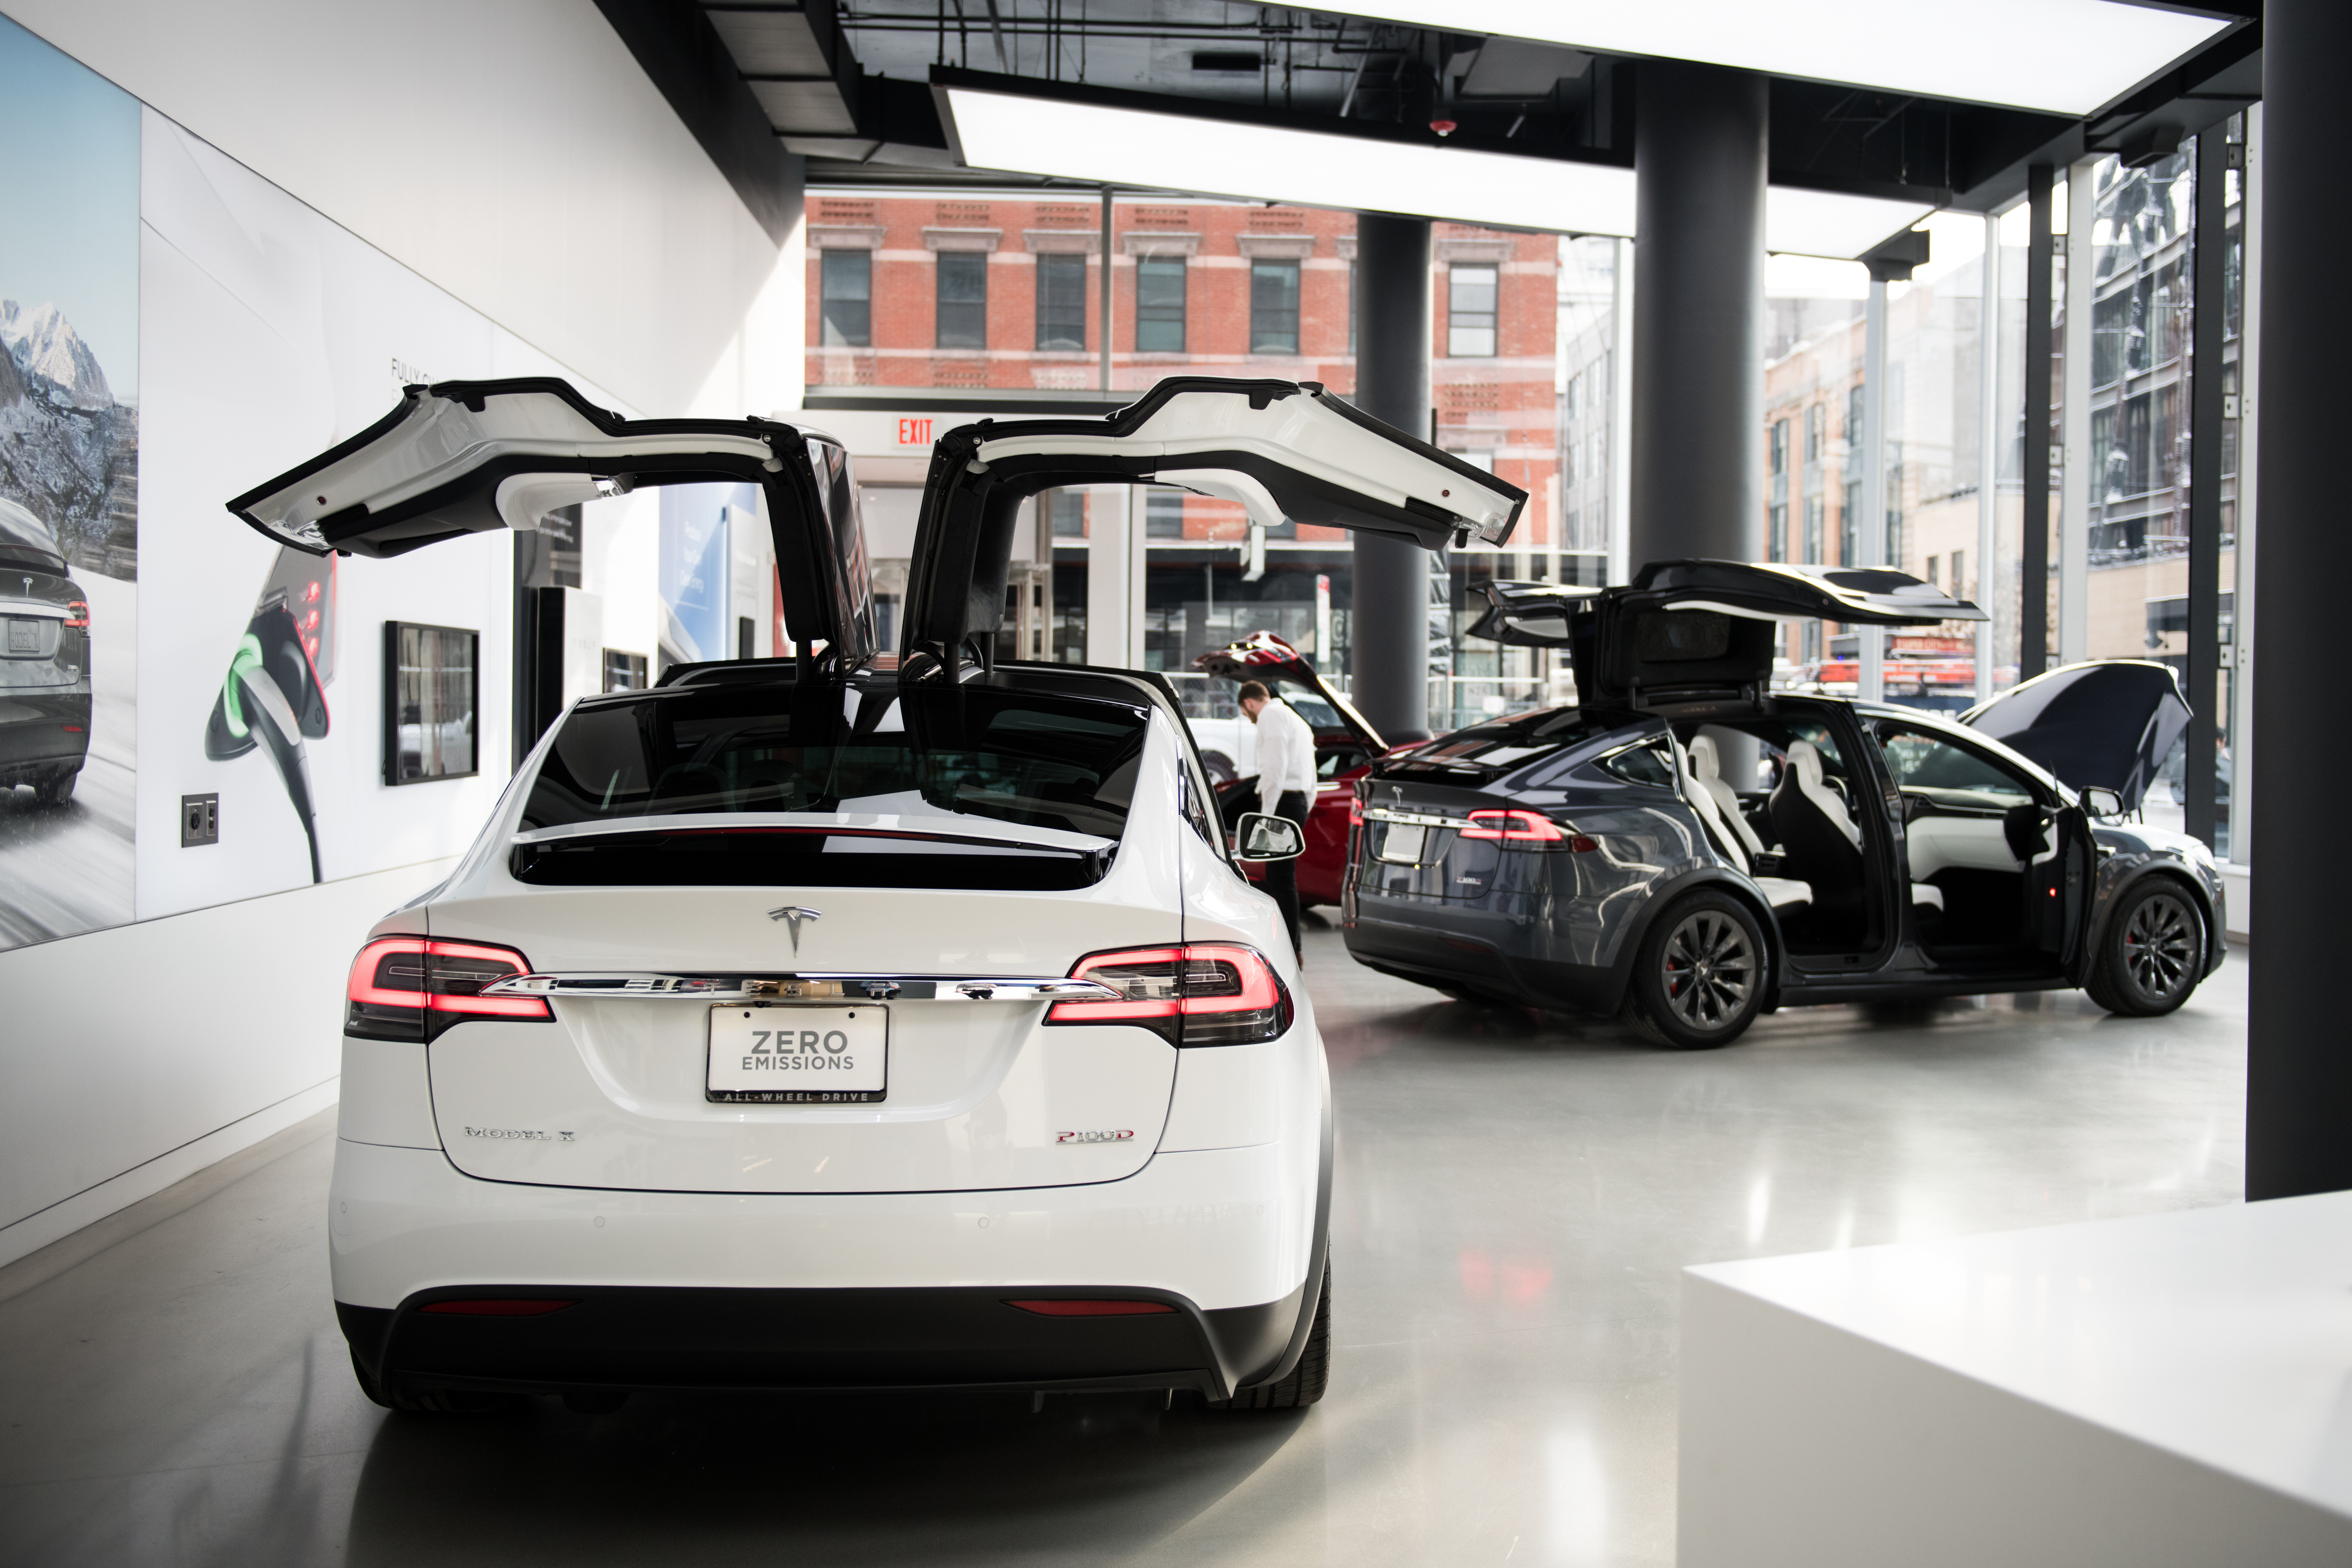 A Tesla Inc. Model X P100D sports utility vehicle (SUV), left, sits on display at the company's new showroom in New York, U.S., on Thursday, Dec. 14, 2017. The Meatpacking District location, which opens to the public at 11 a.m. Friday, lets customers for the first time explore energy offerings, configure cars and place orders all under one roof. Photographer: Mark Kauzlarich/Bloomberg via Getty Images